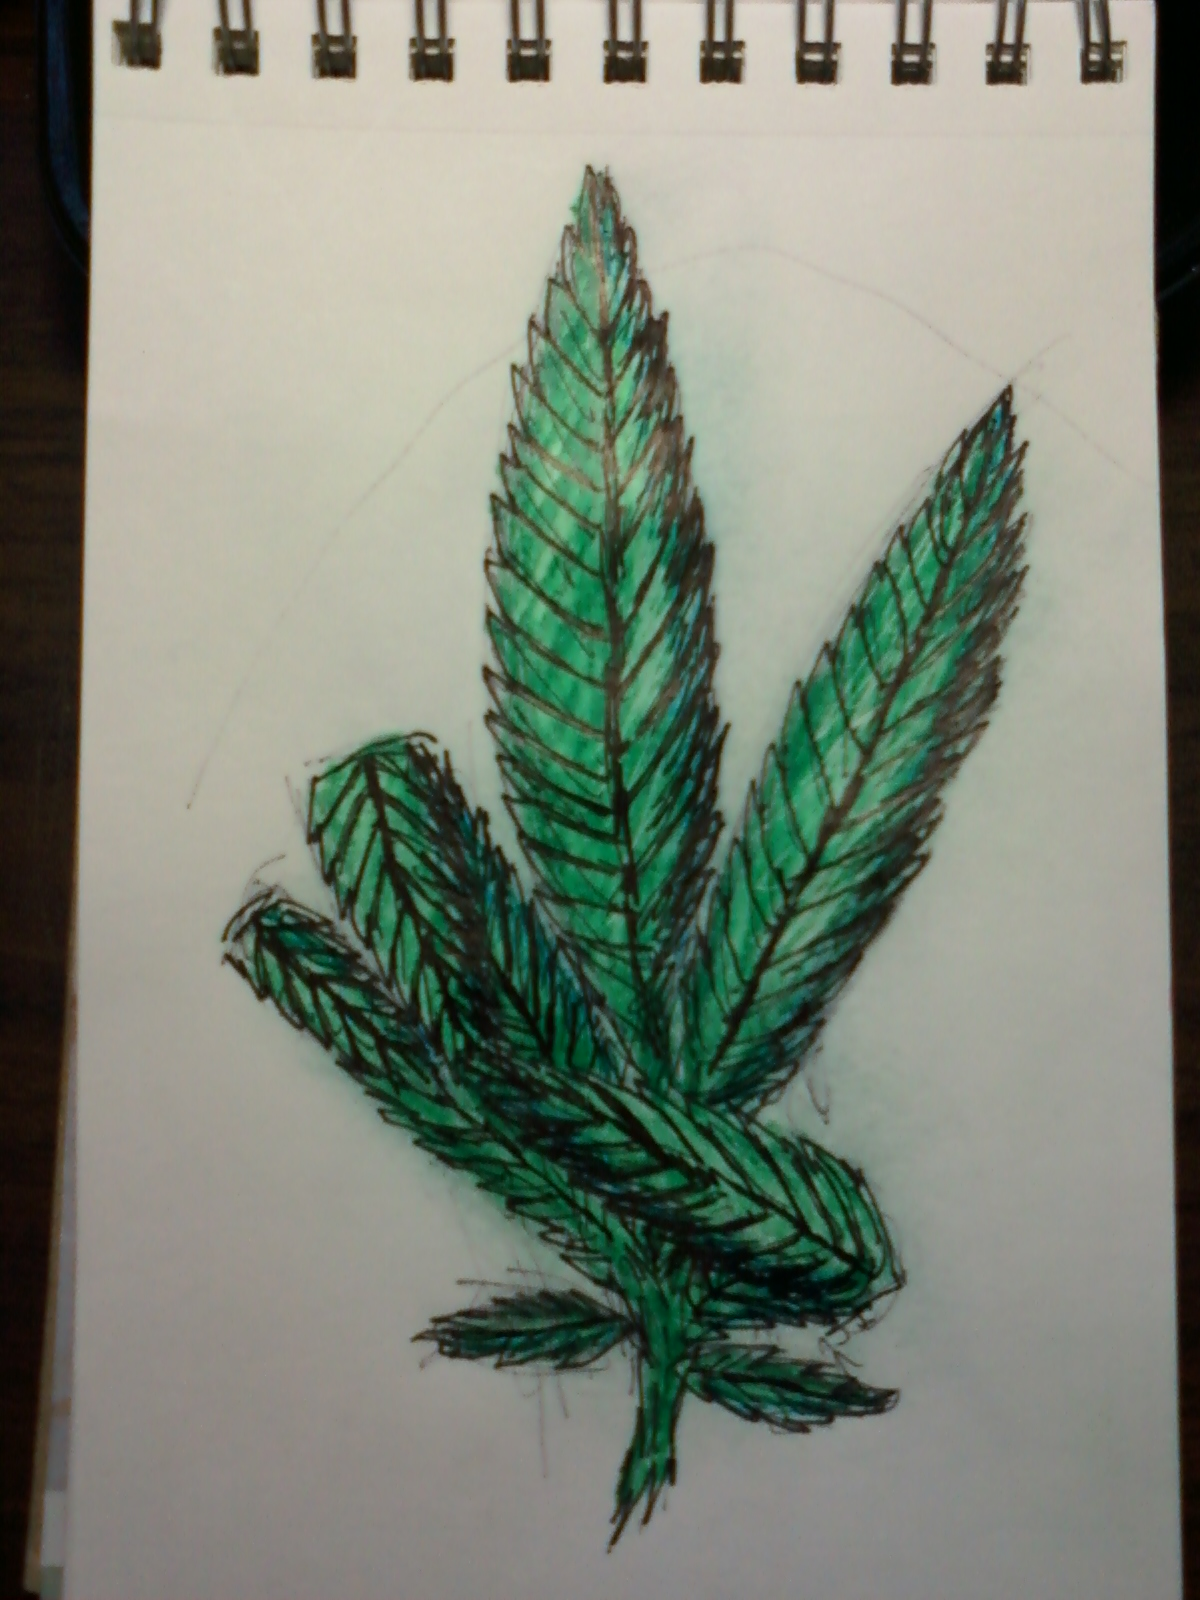 CannabisGraphicImagesGallery